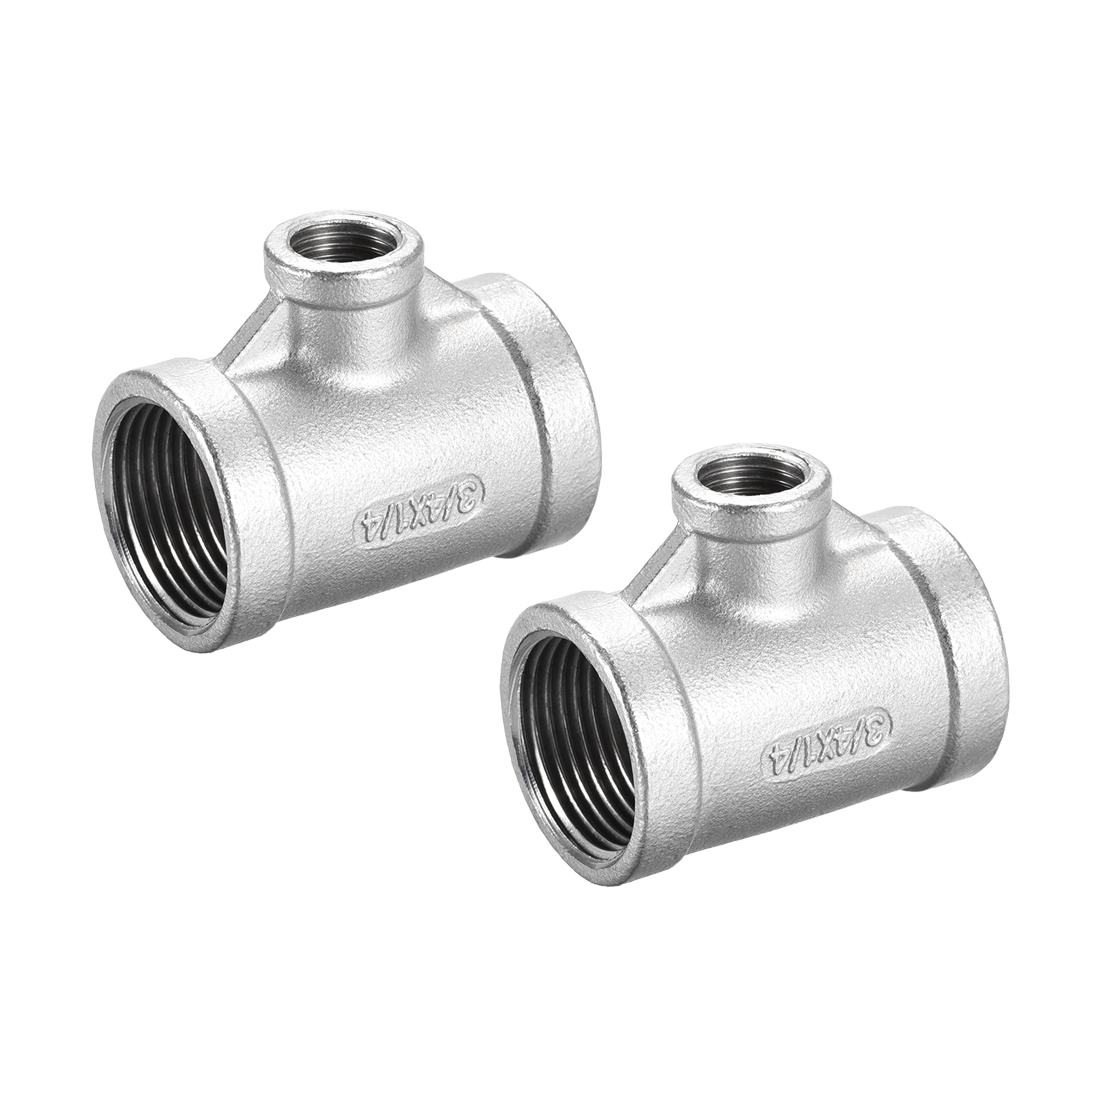 Stainless Steel 304 Cast Pipe Fitting 3/4BSPTx1/4BSPT Tee Shaped Connector 2pcs